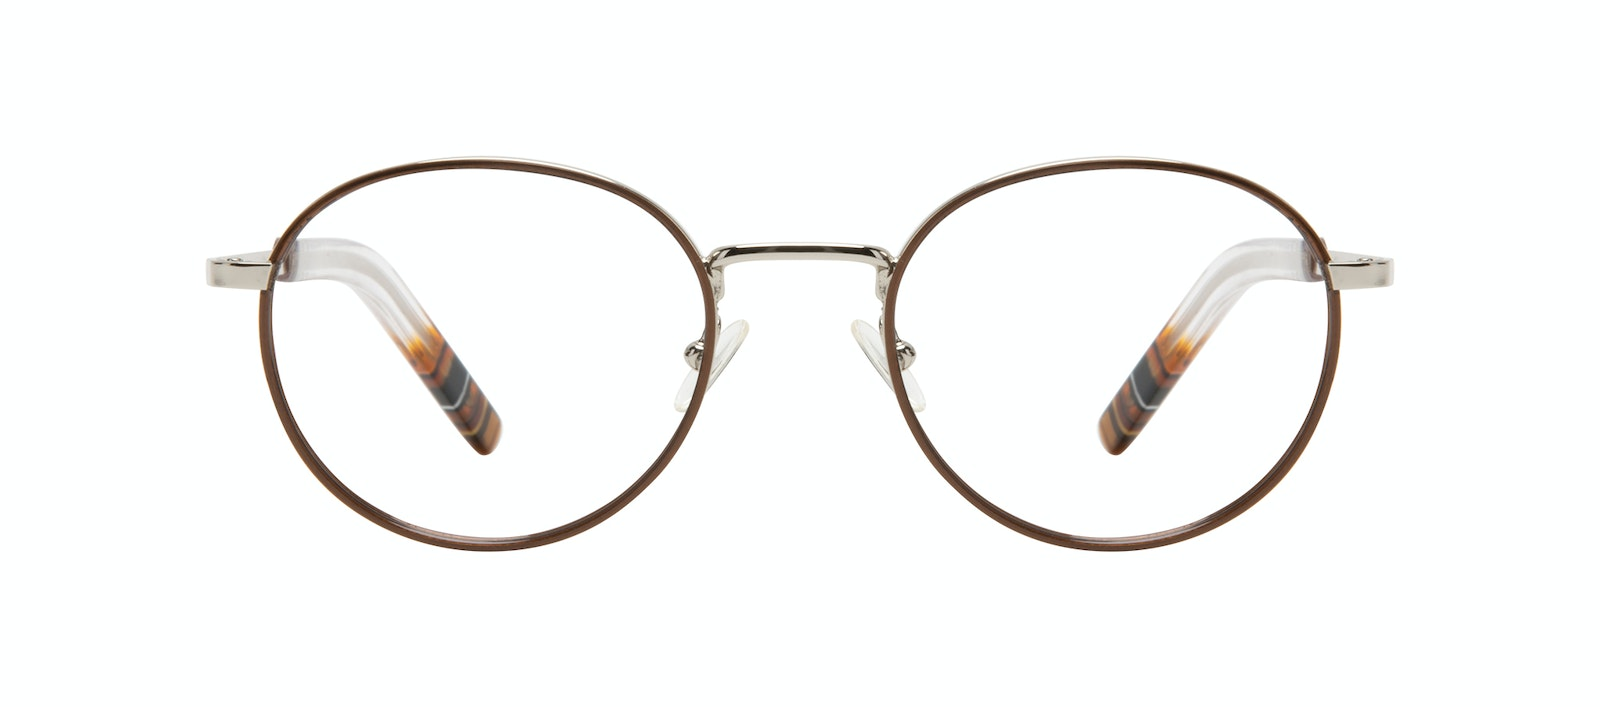 Affordable Fashion Glasses Round Eyeglasses Men Reach Brown Steel Front